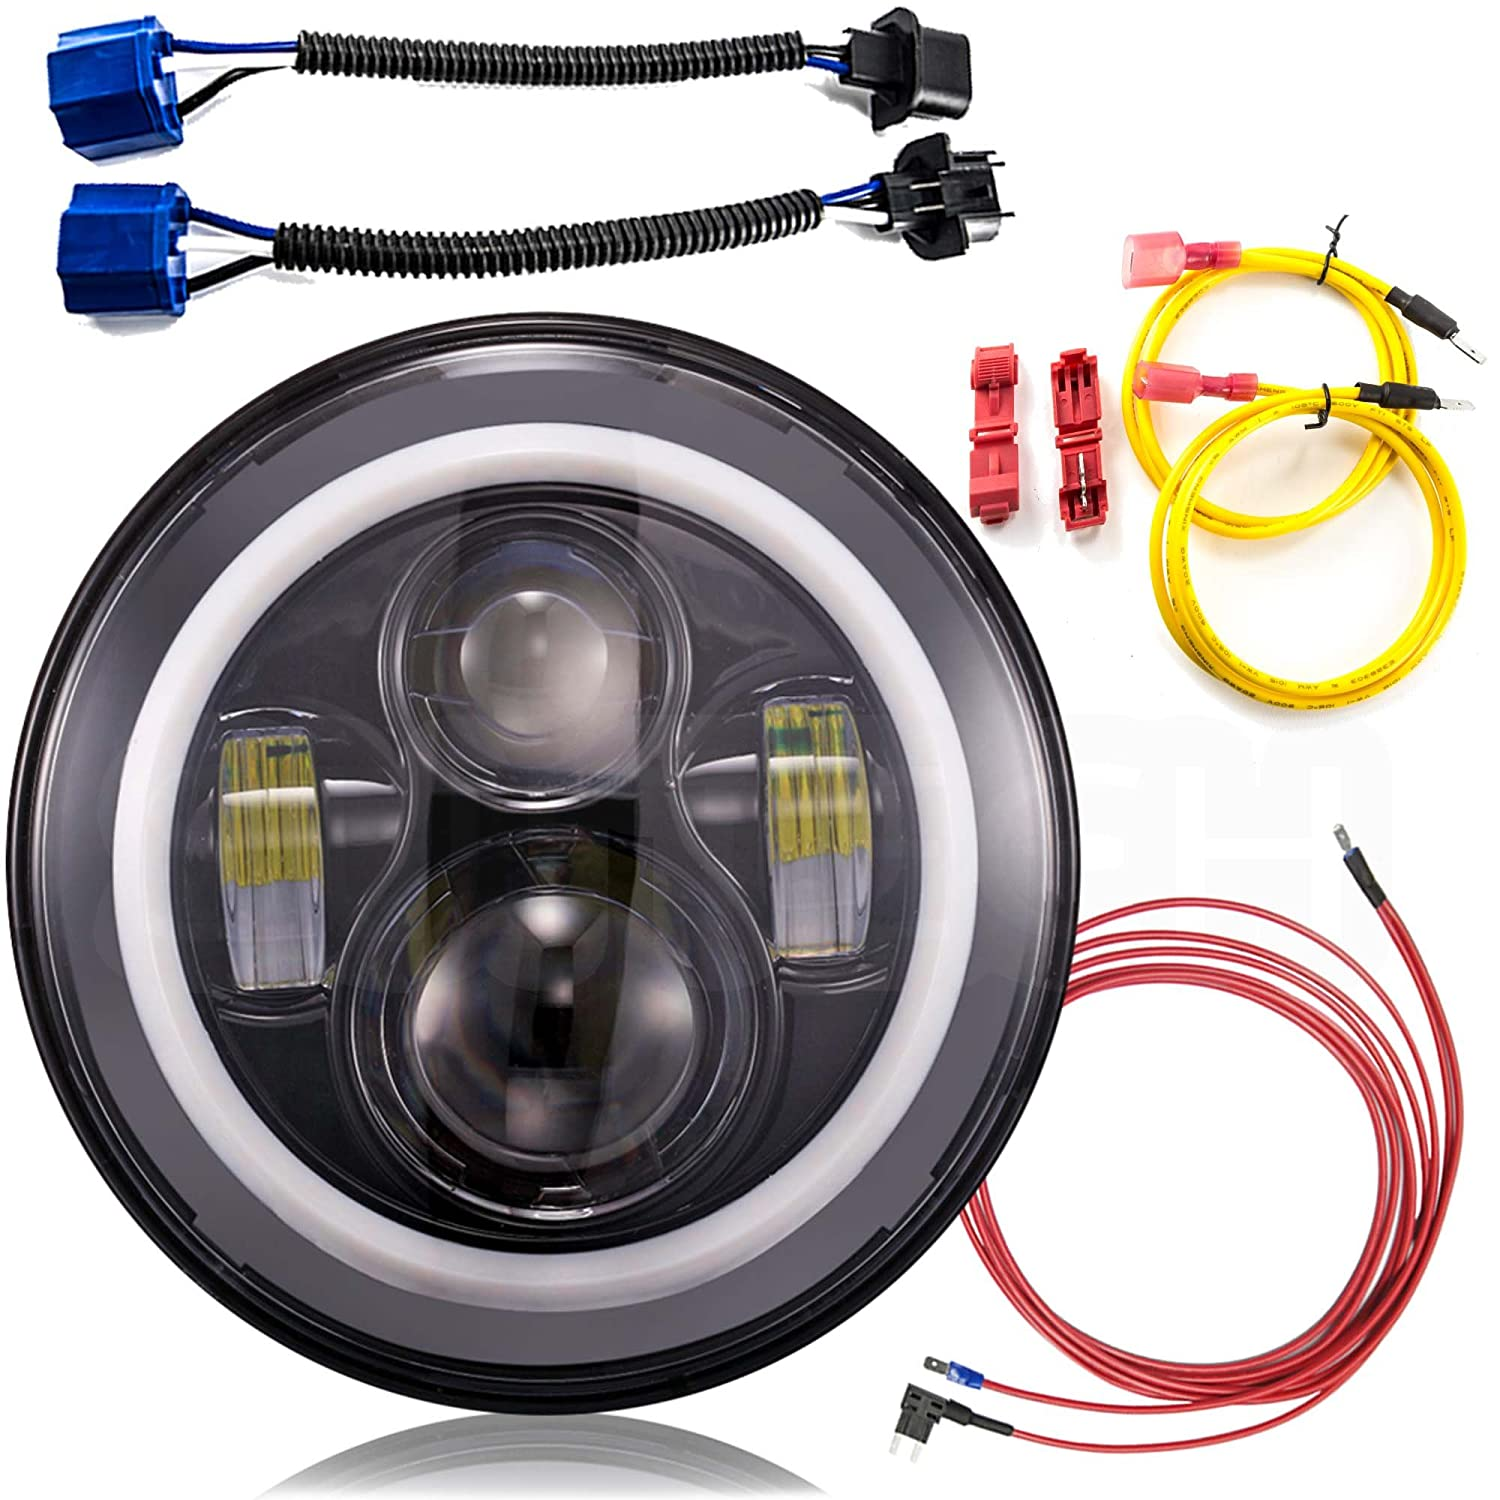 Jeep Wrangler Headlights 7 Inch Round Led Headlight 03 Hummer Fuse Box Conversion Kit Dlr Light Assembly For Jk Tj Fj Trucks Motorcycle Headlamp Super